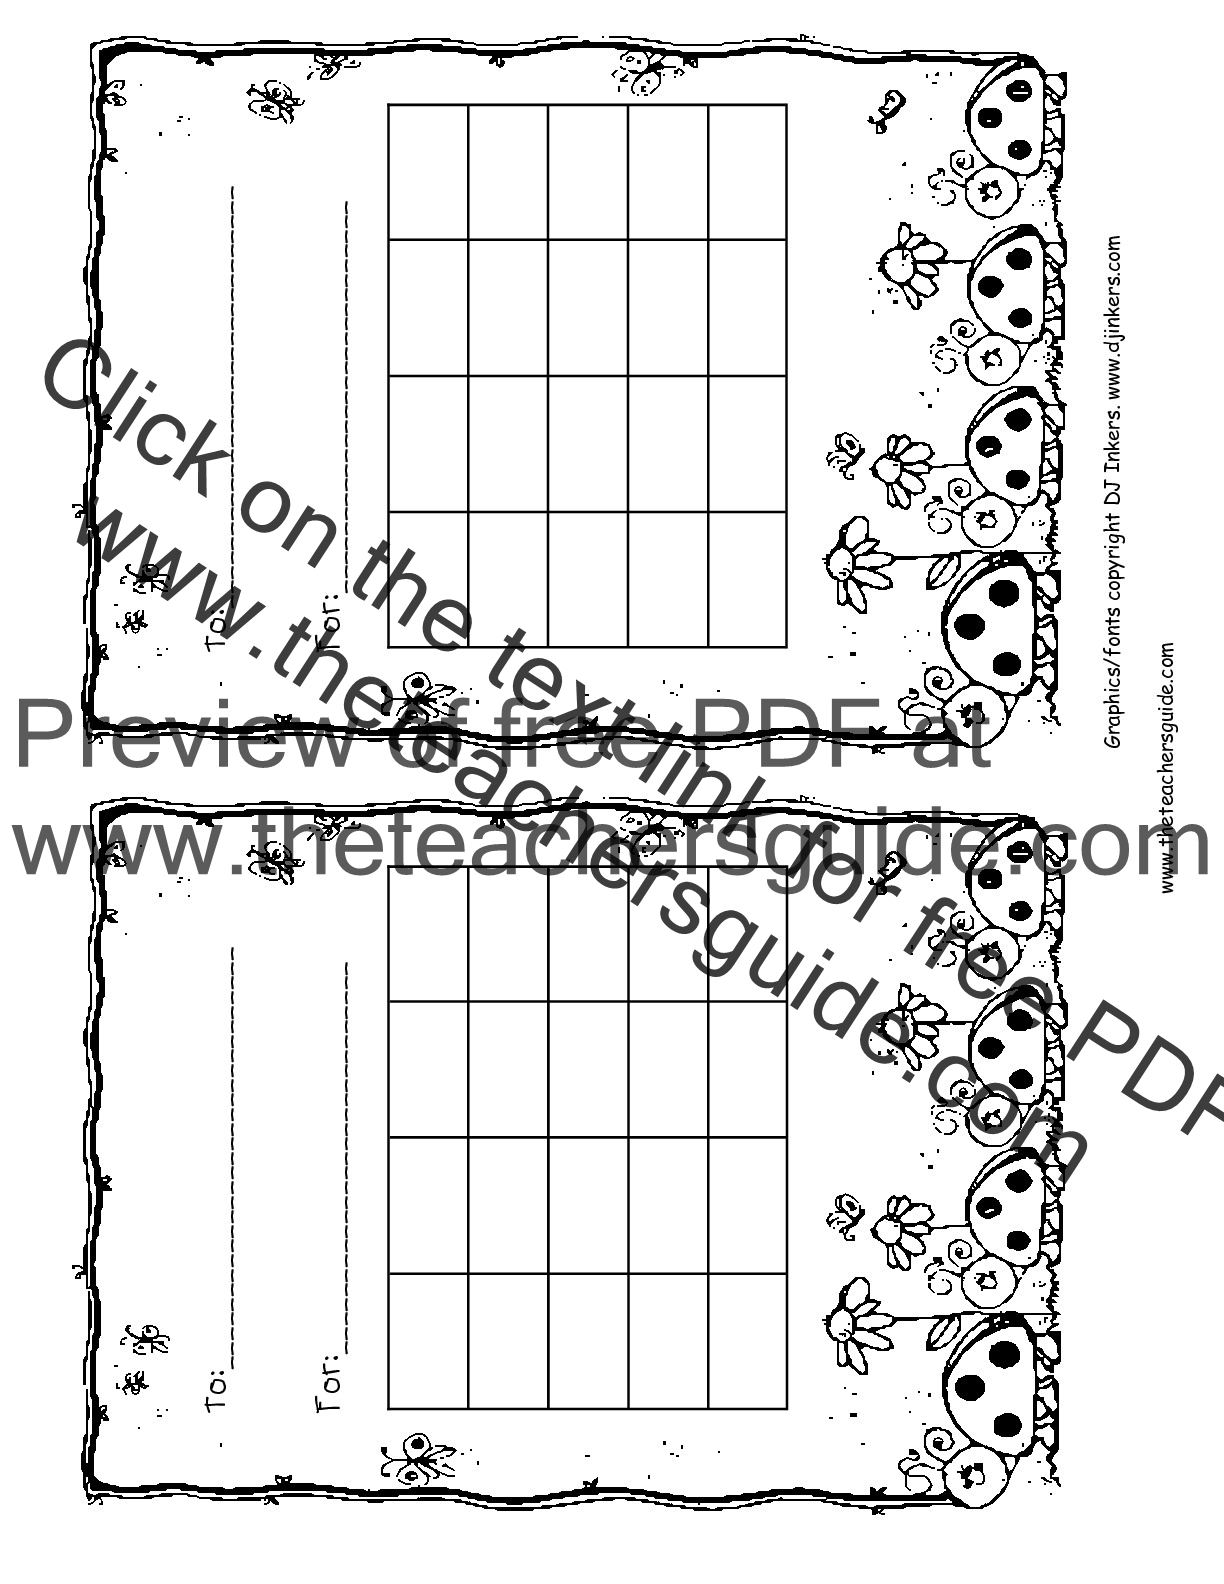 Reward chart. Students can color their own chart.